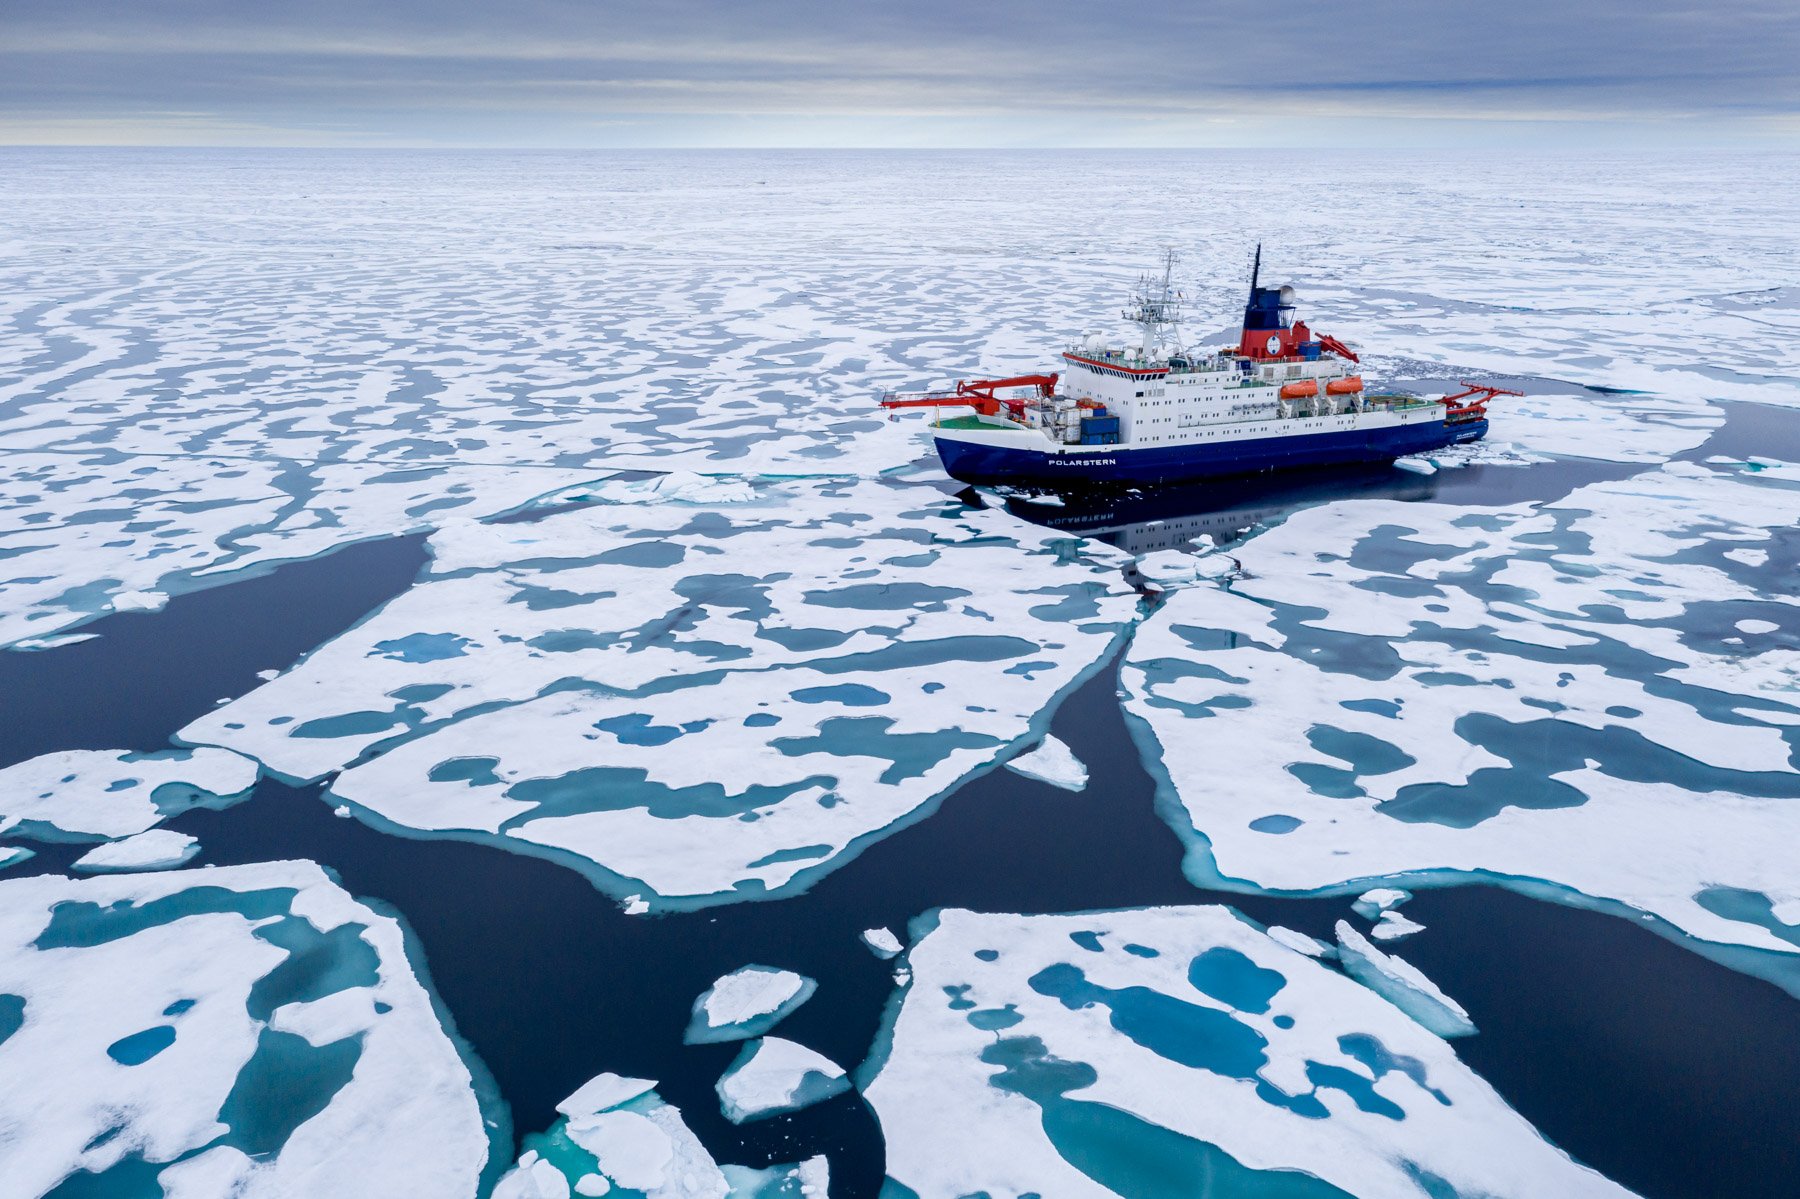 MOSAiC Expedition Reaches the North Pole